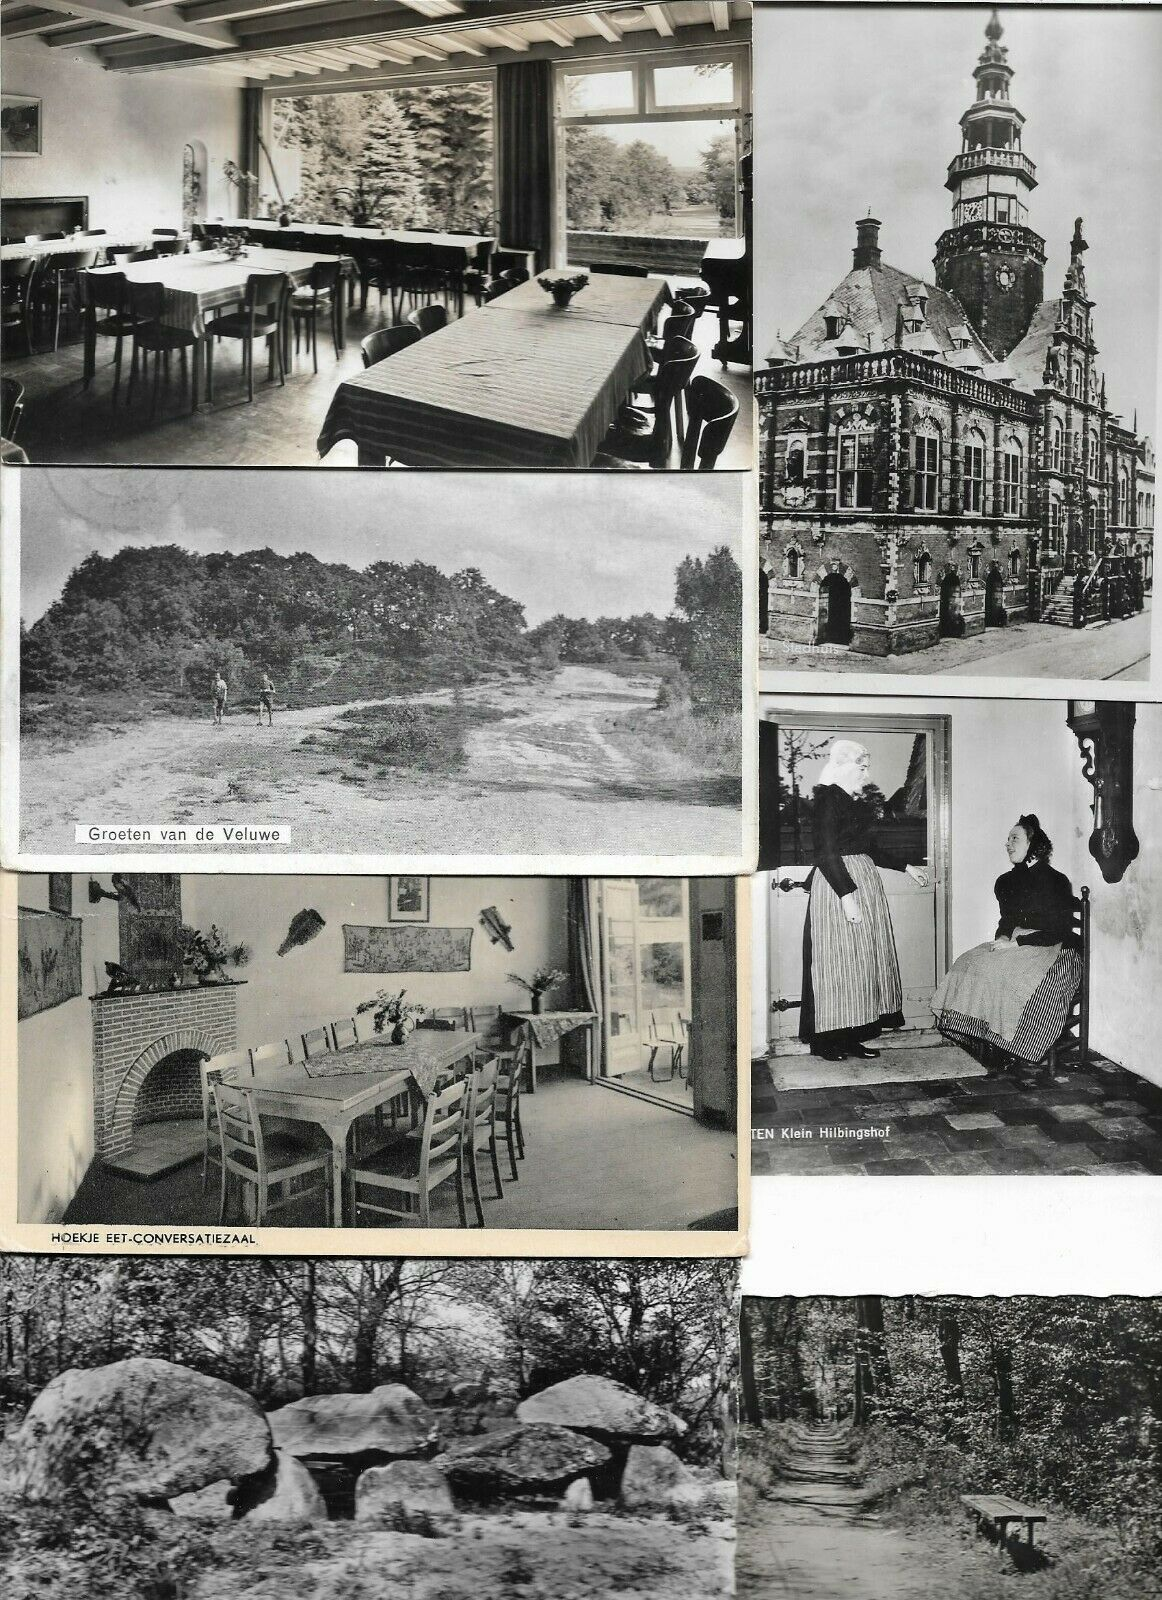 Netherlands Rotterdam, Den Haag & more Postcard Lot of 24 with RPPC 01.05 Без бренда - фотография #3